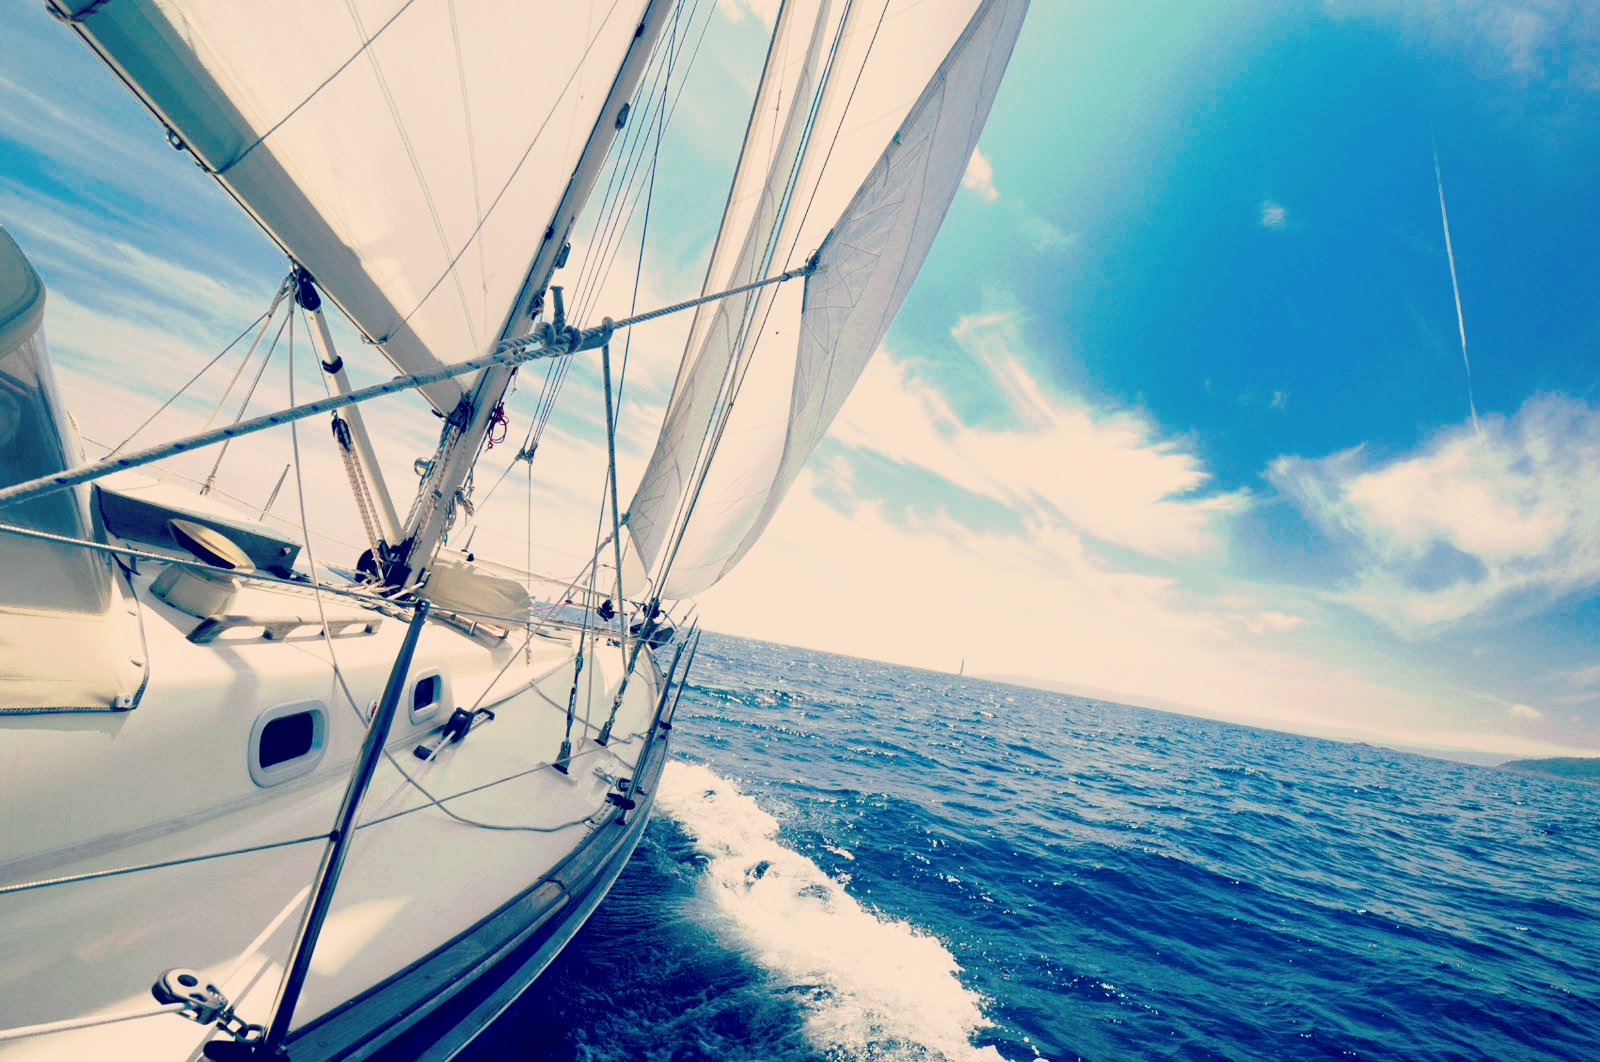 The Top 10: Sailing Resources